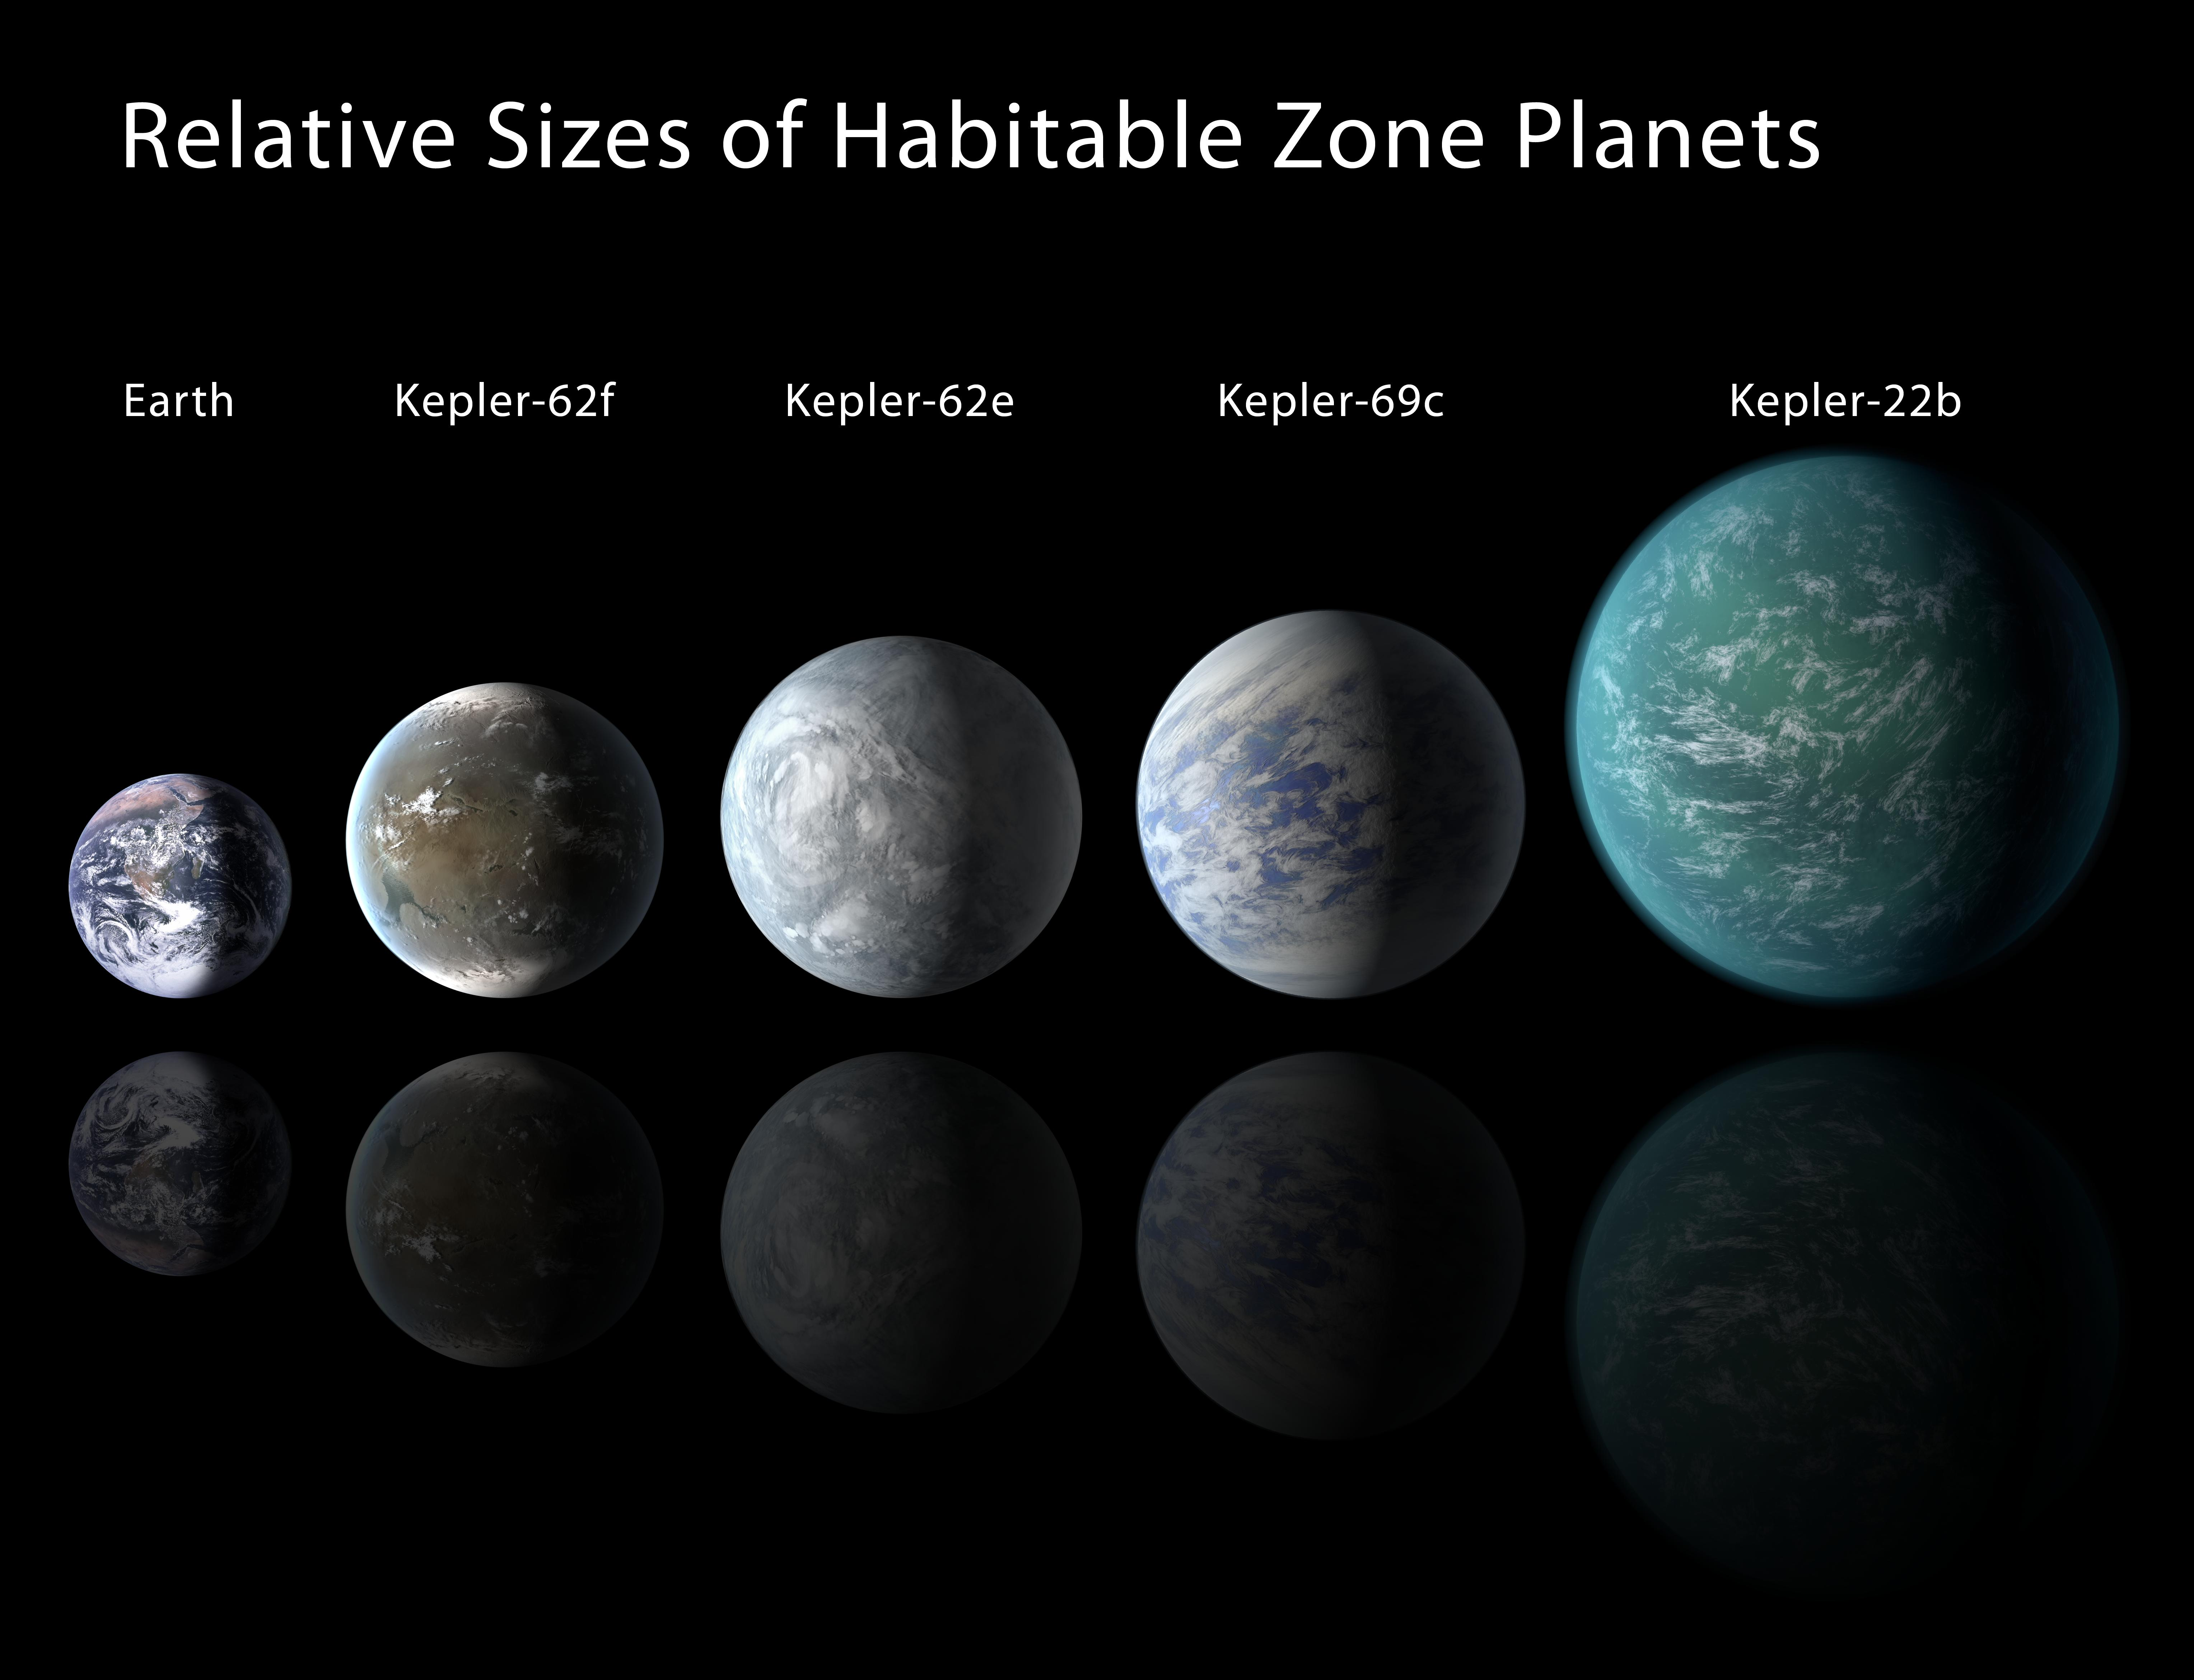 Lining Kepler Habitable Zone Planets Up